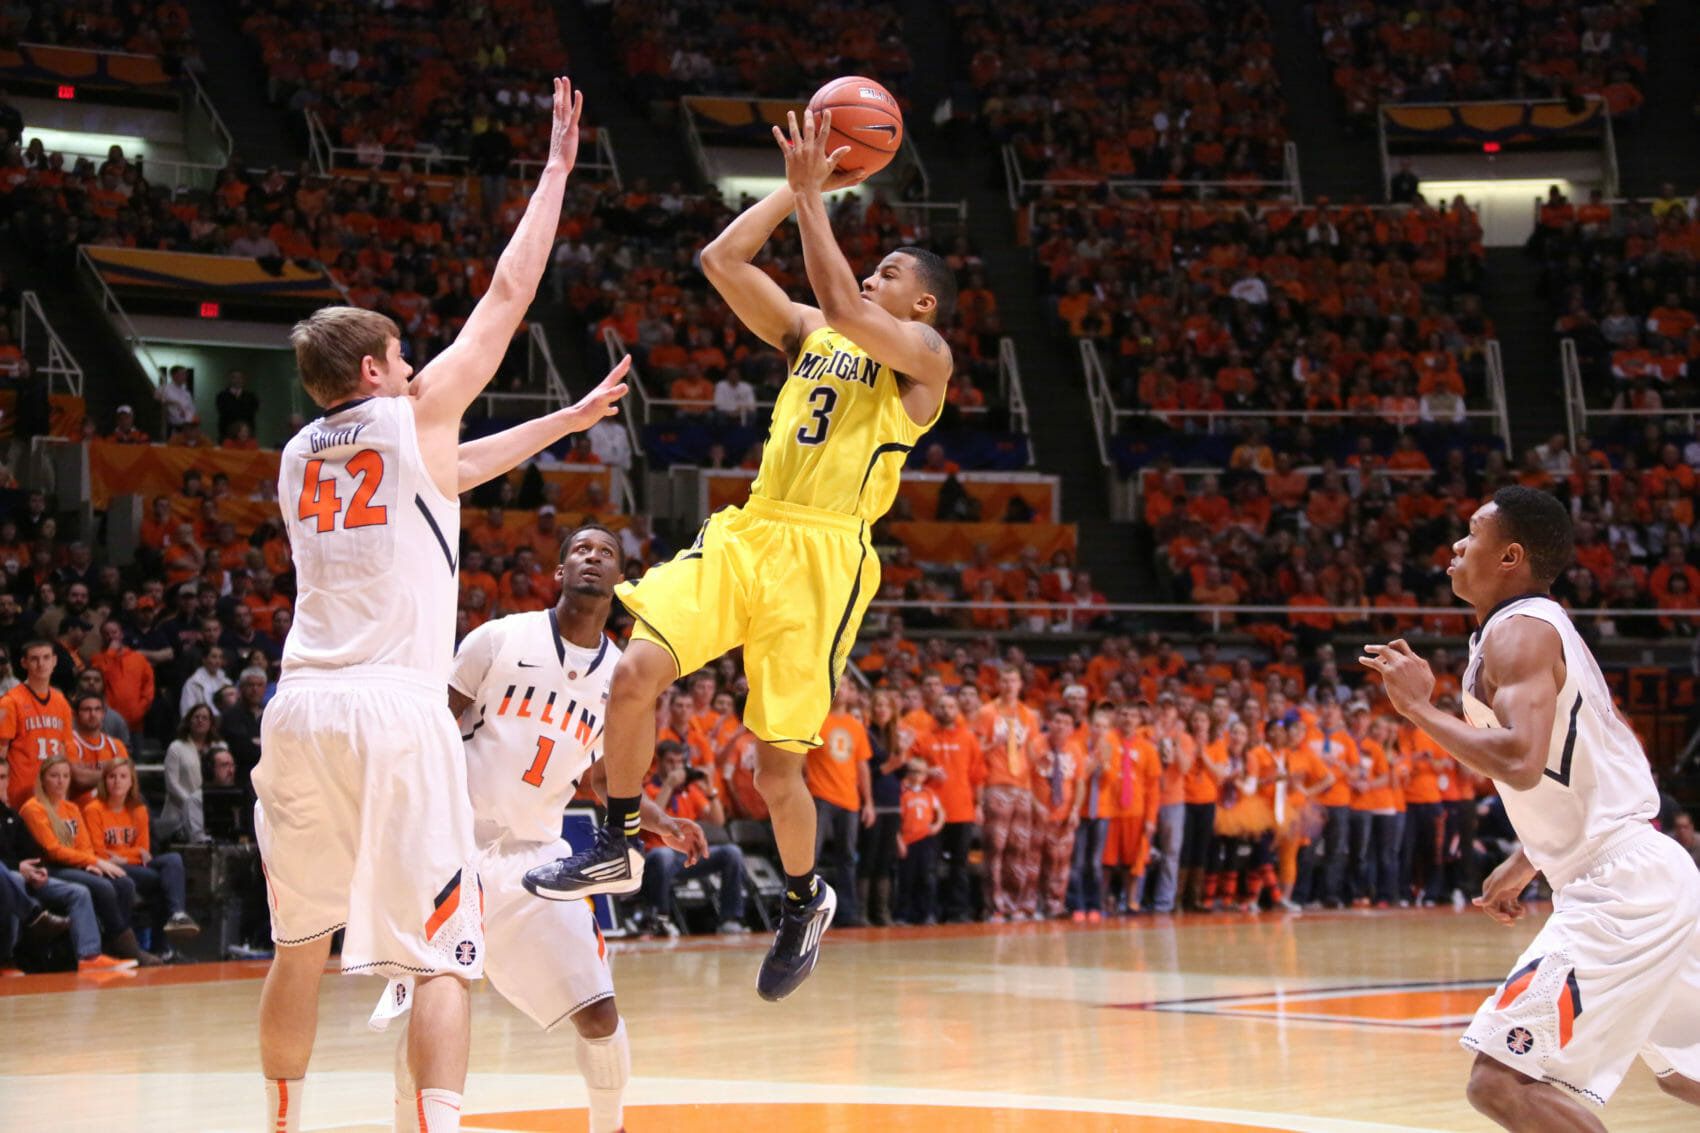 Michigan 74, Illinois 60-6